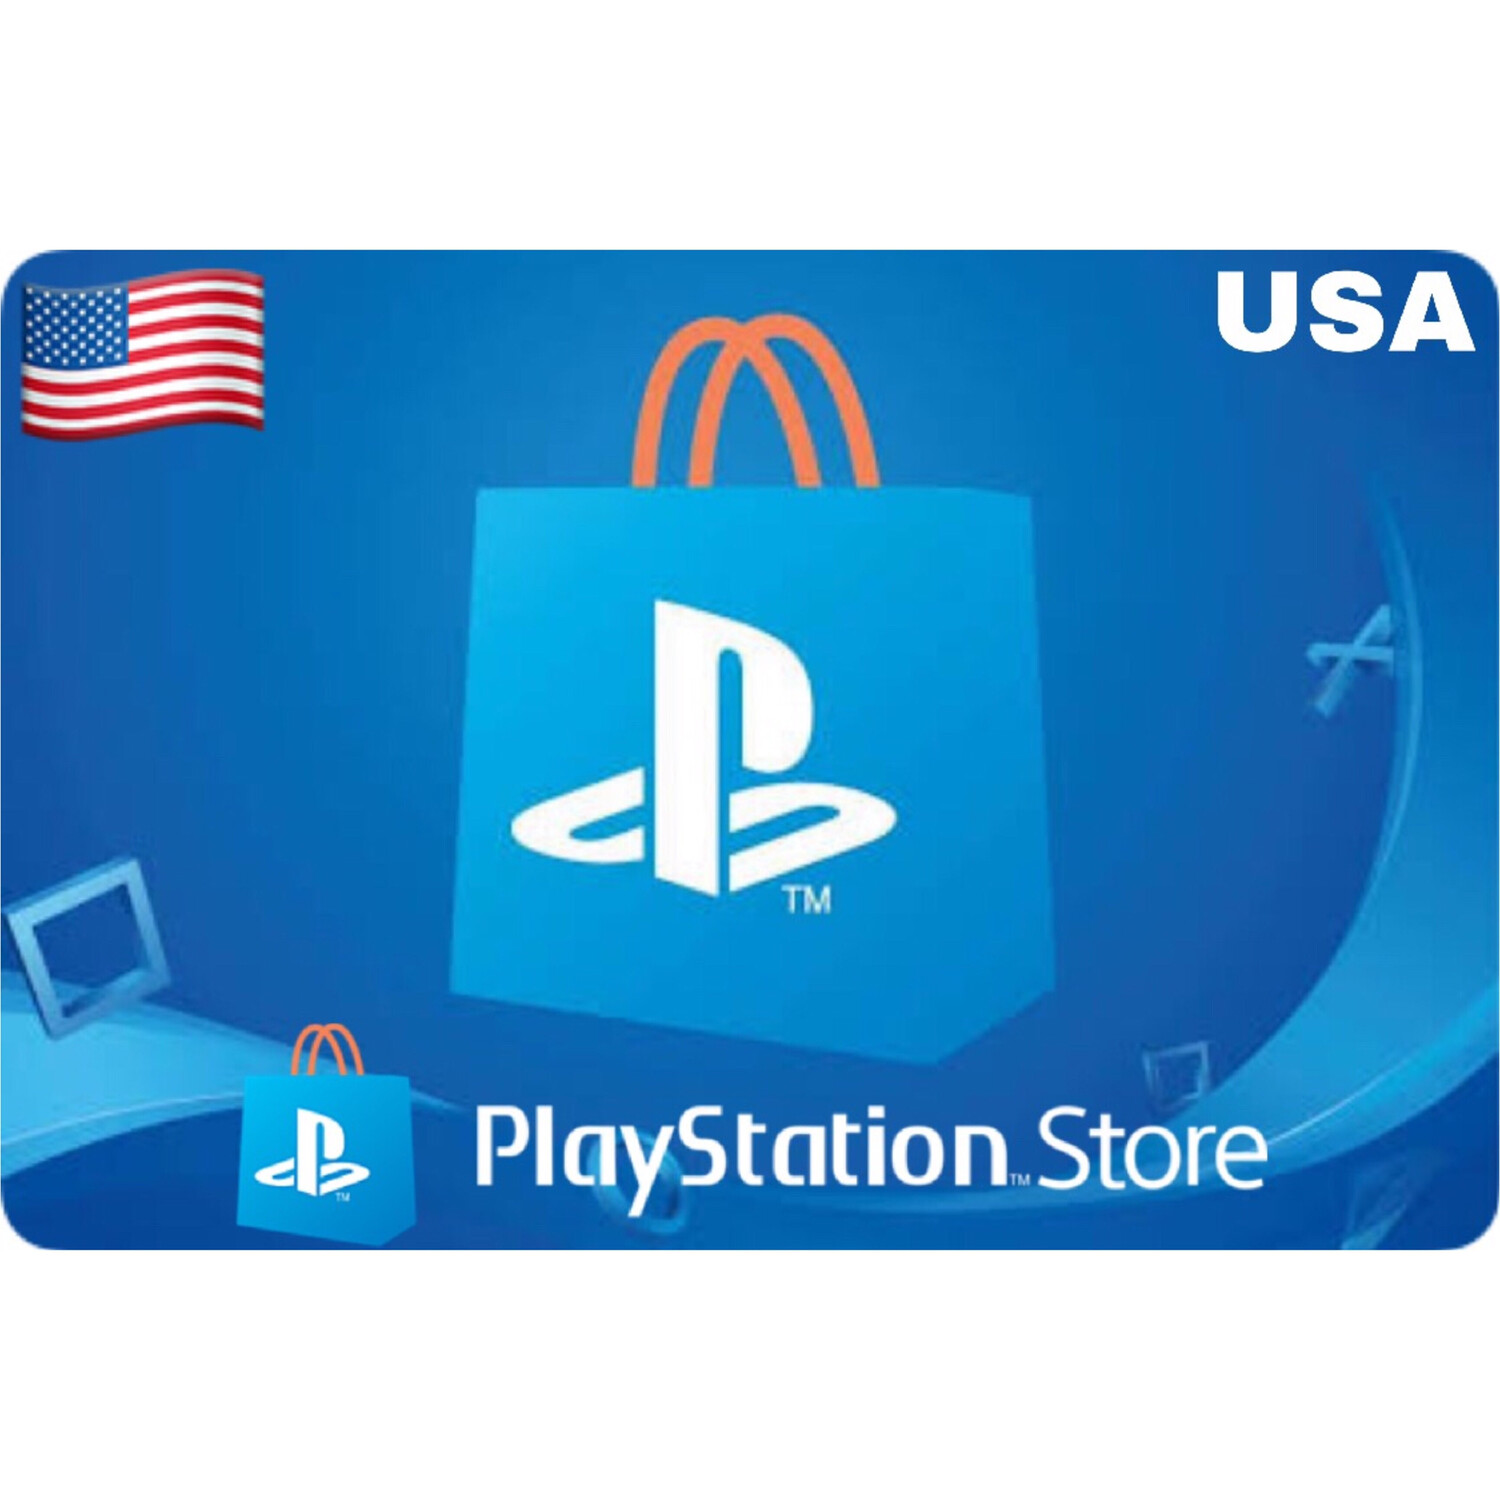 Playstation (PSN Card) USA $10 $20 $25 $50 $60 $75 $100